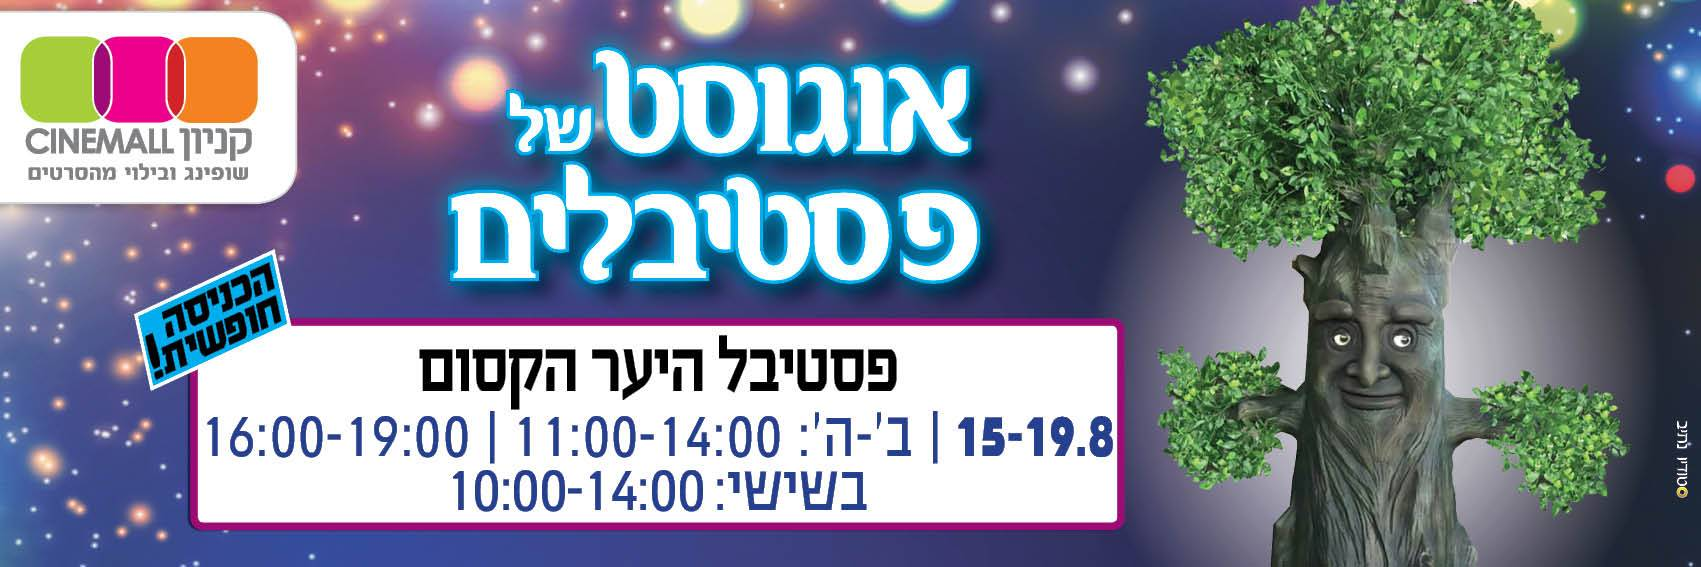 0035-August-Festival-shilut-MagicForest-6X2-HR